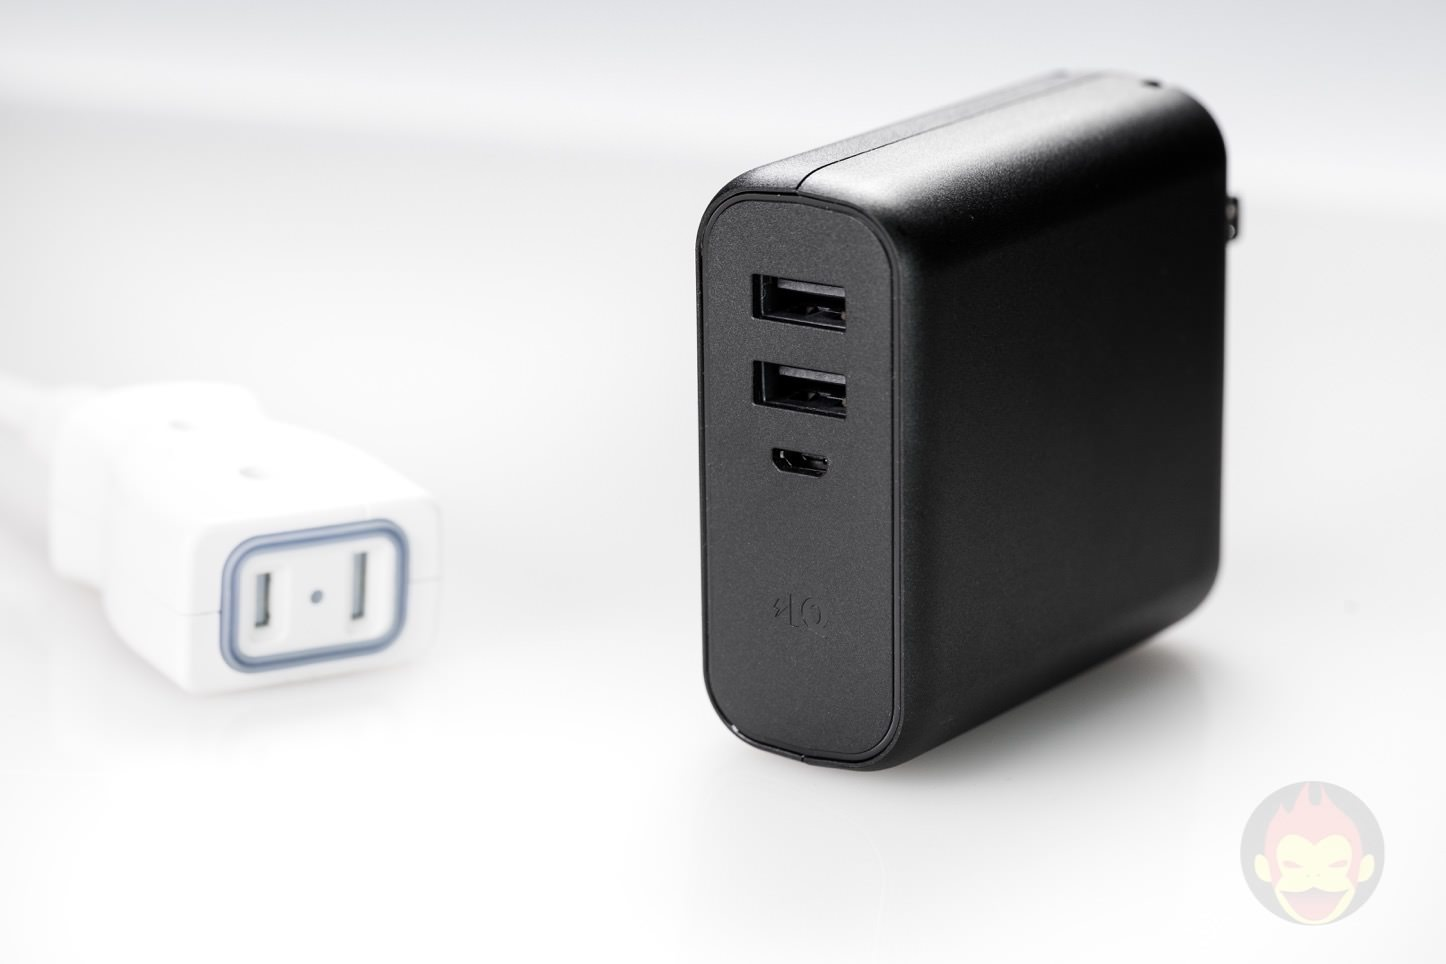 Anker-PowerCore-Fusion-5000-03.jpg